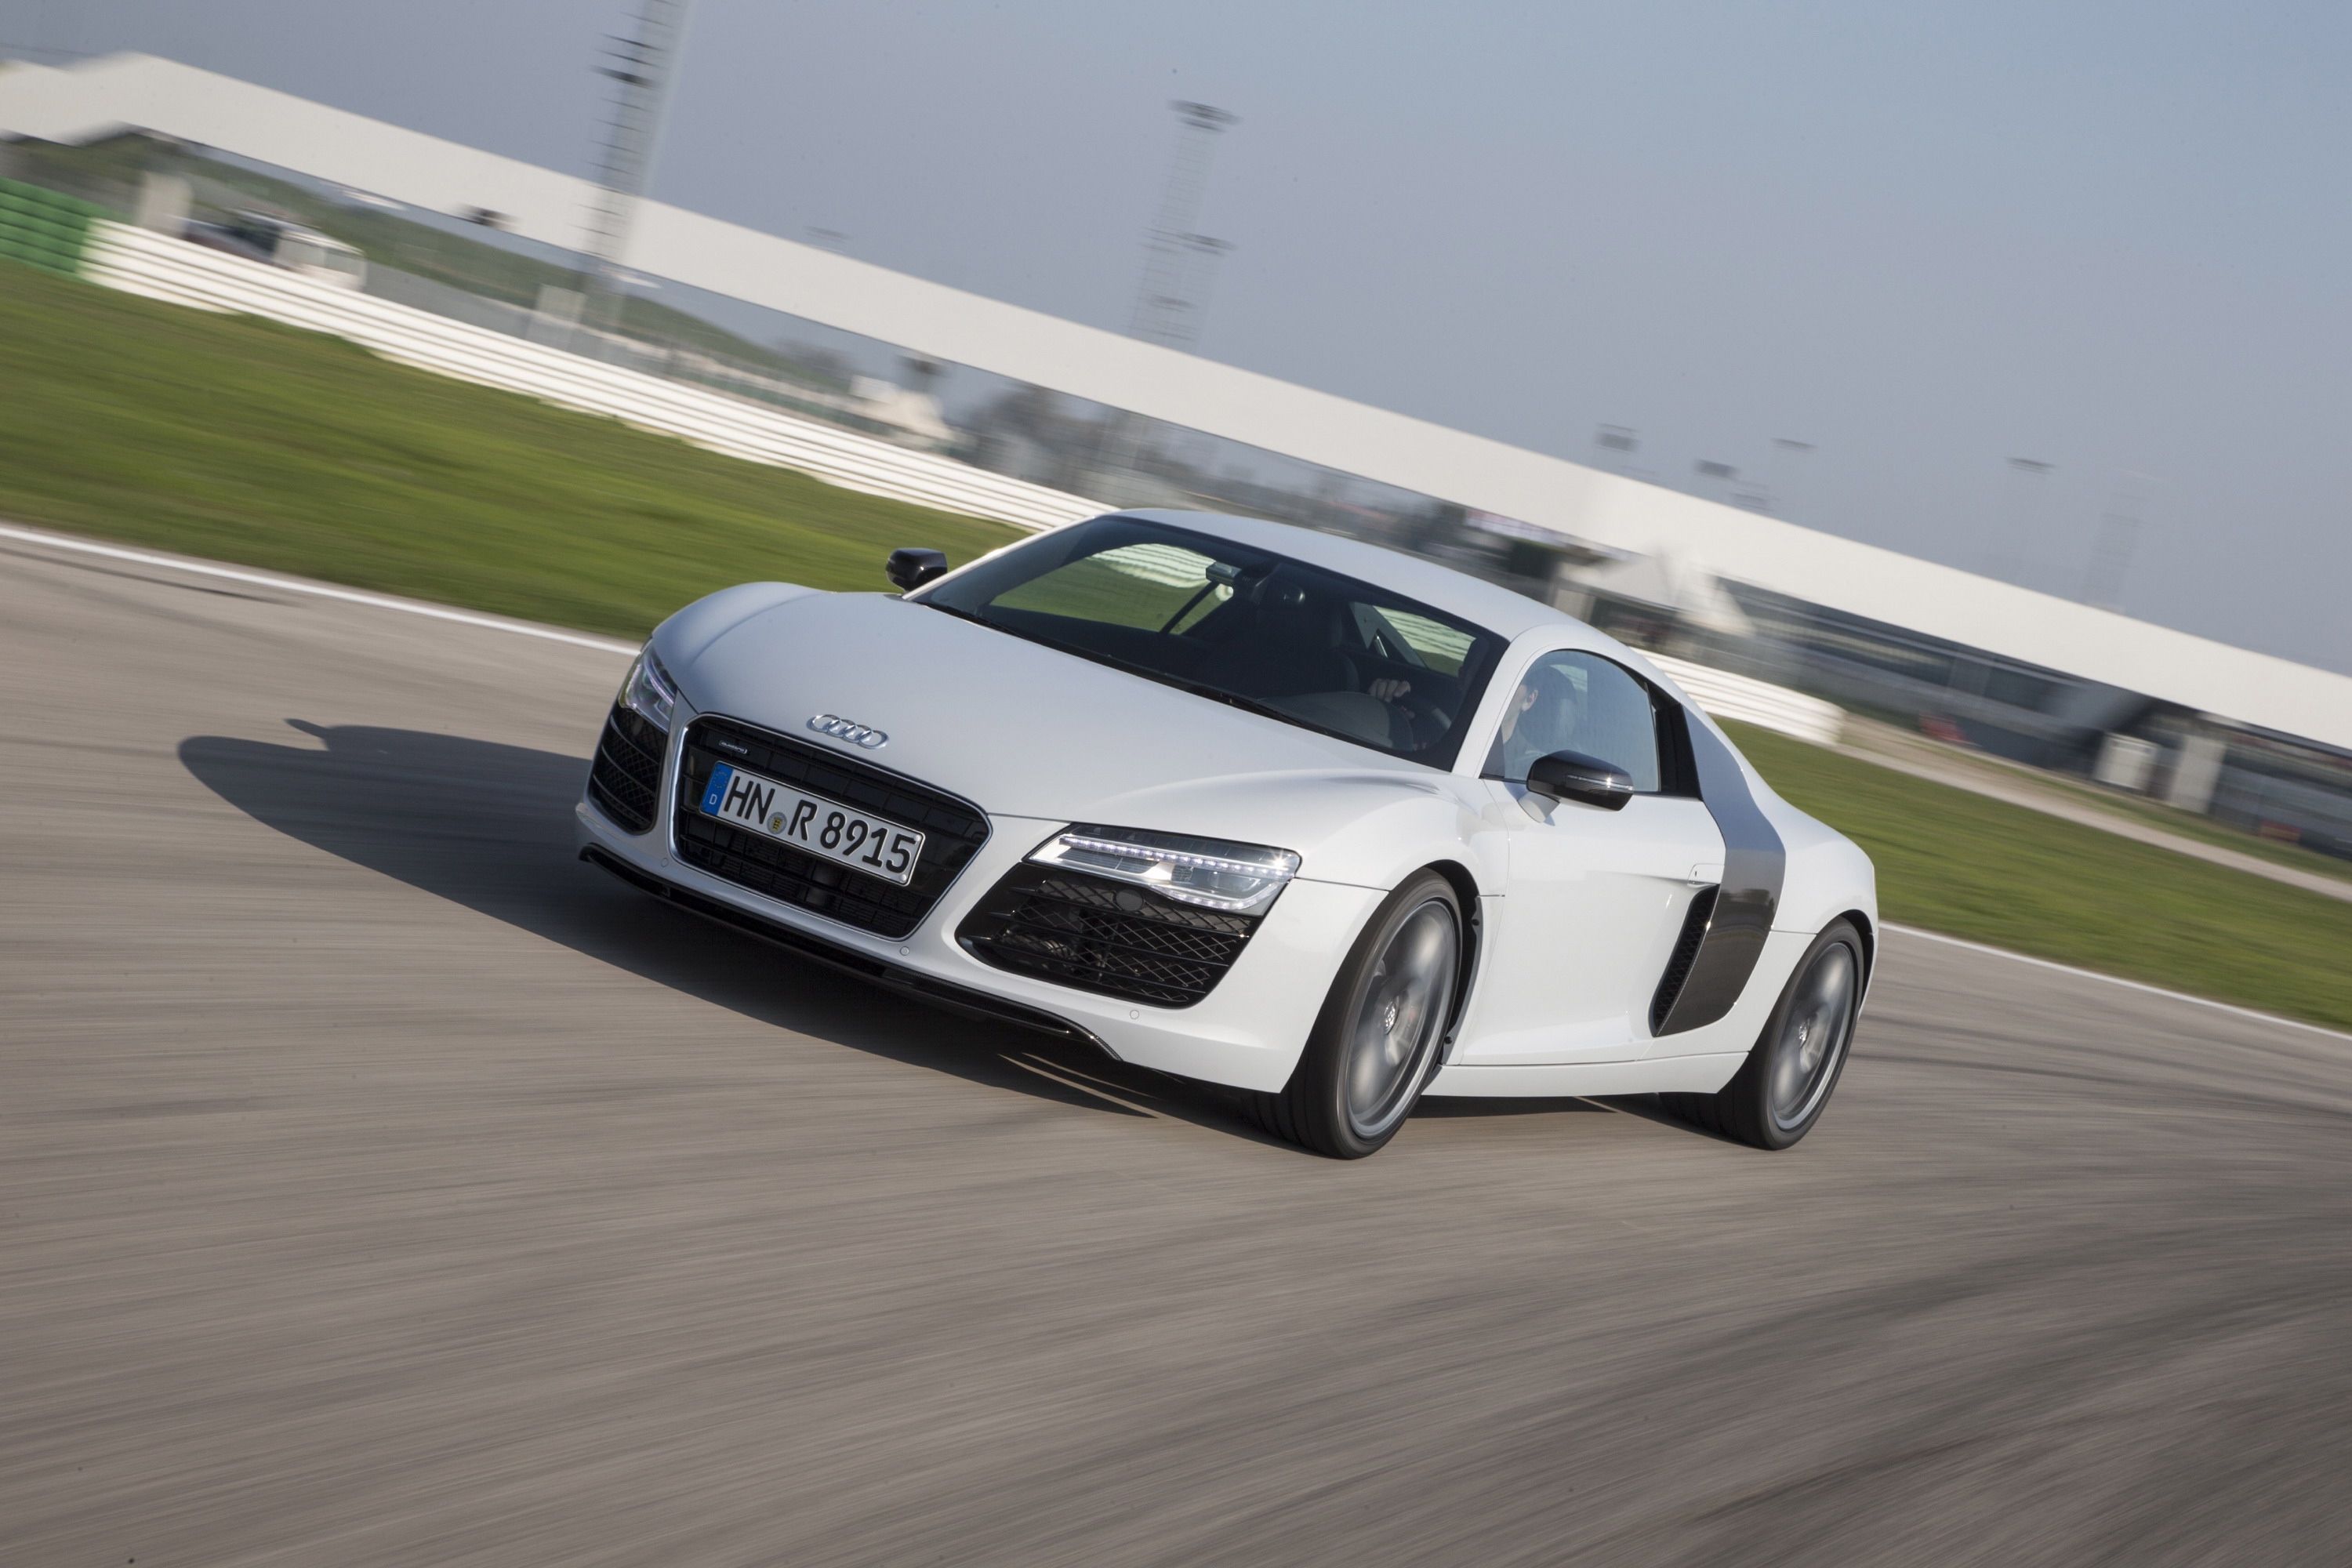 2014 - 2015 audi r8 v8 coupe review - top speed